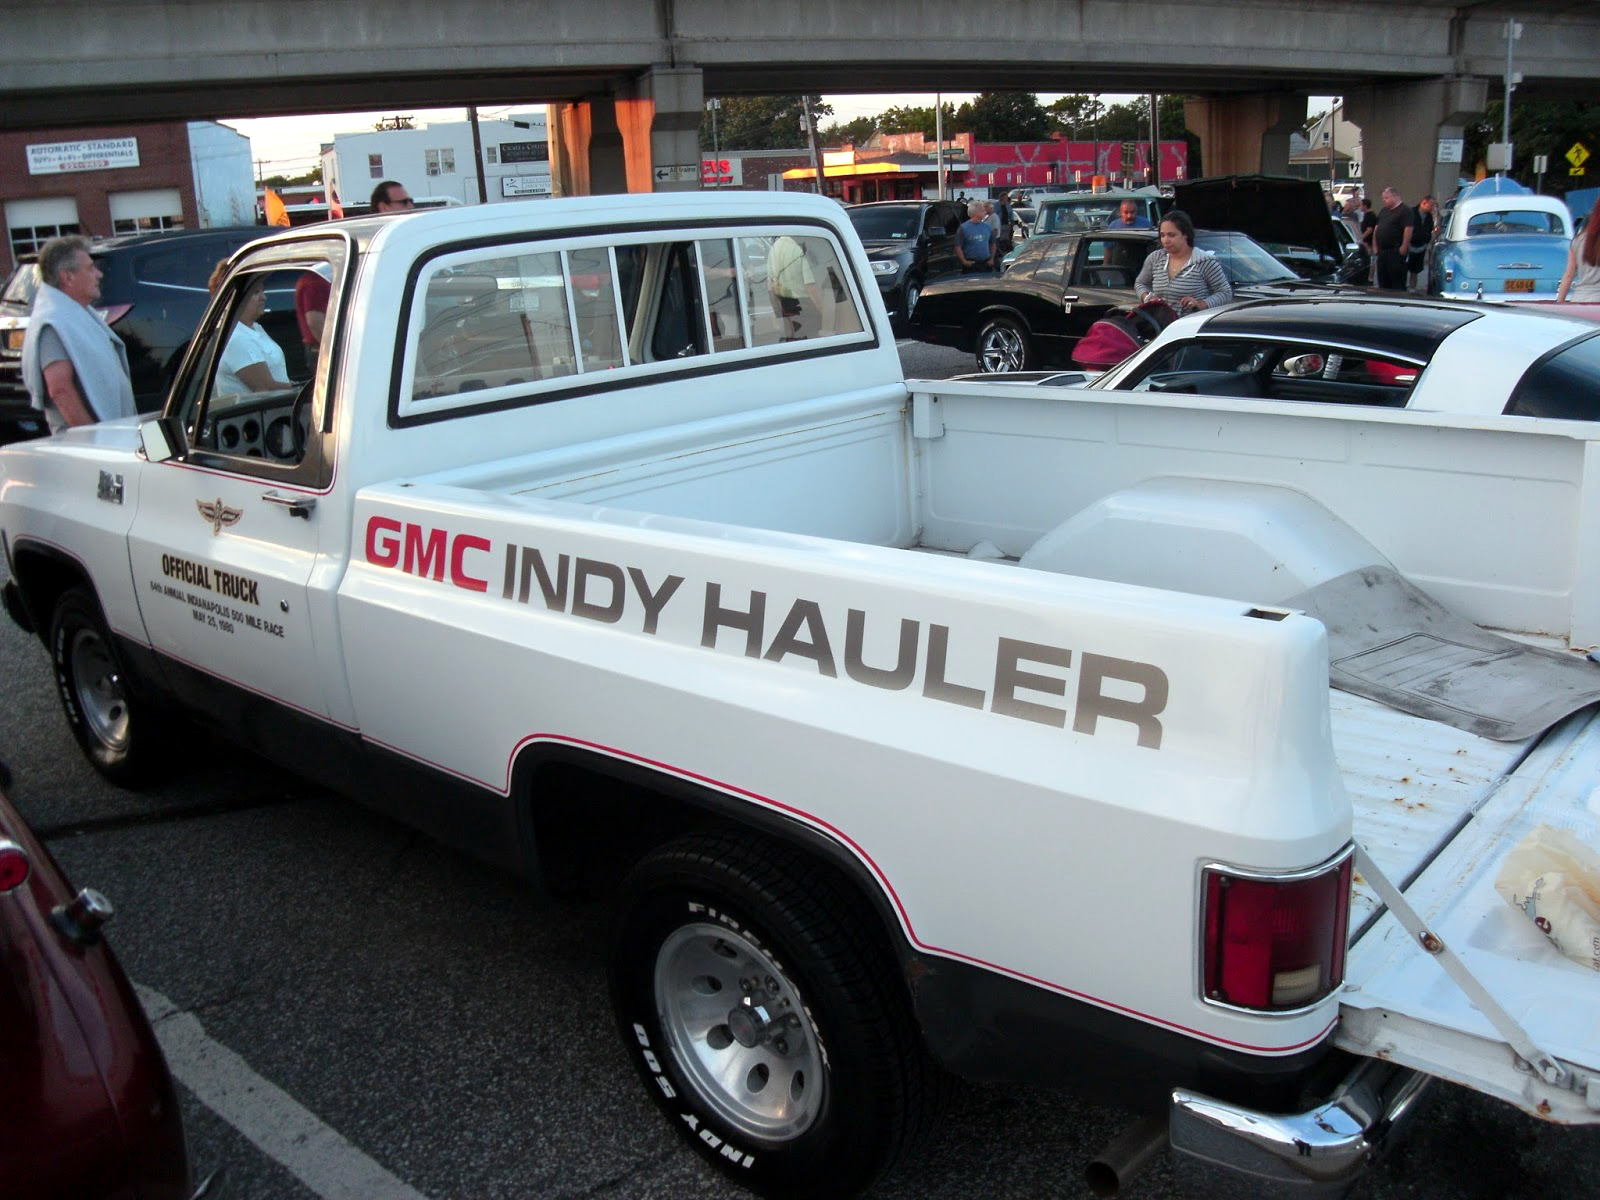 Just A Car Guy 1980 GMC Indy Hauler truck